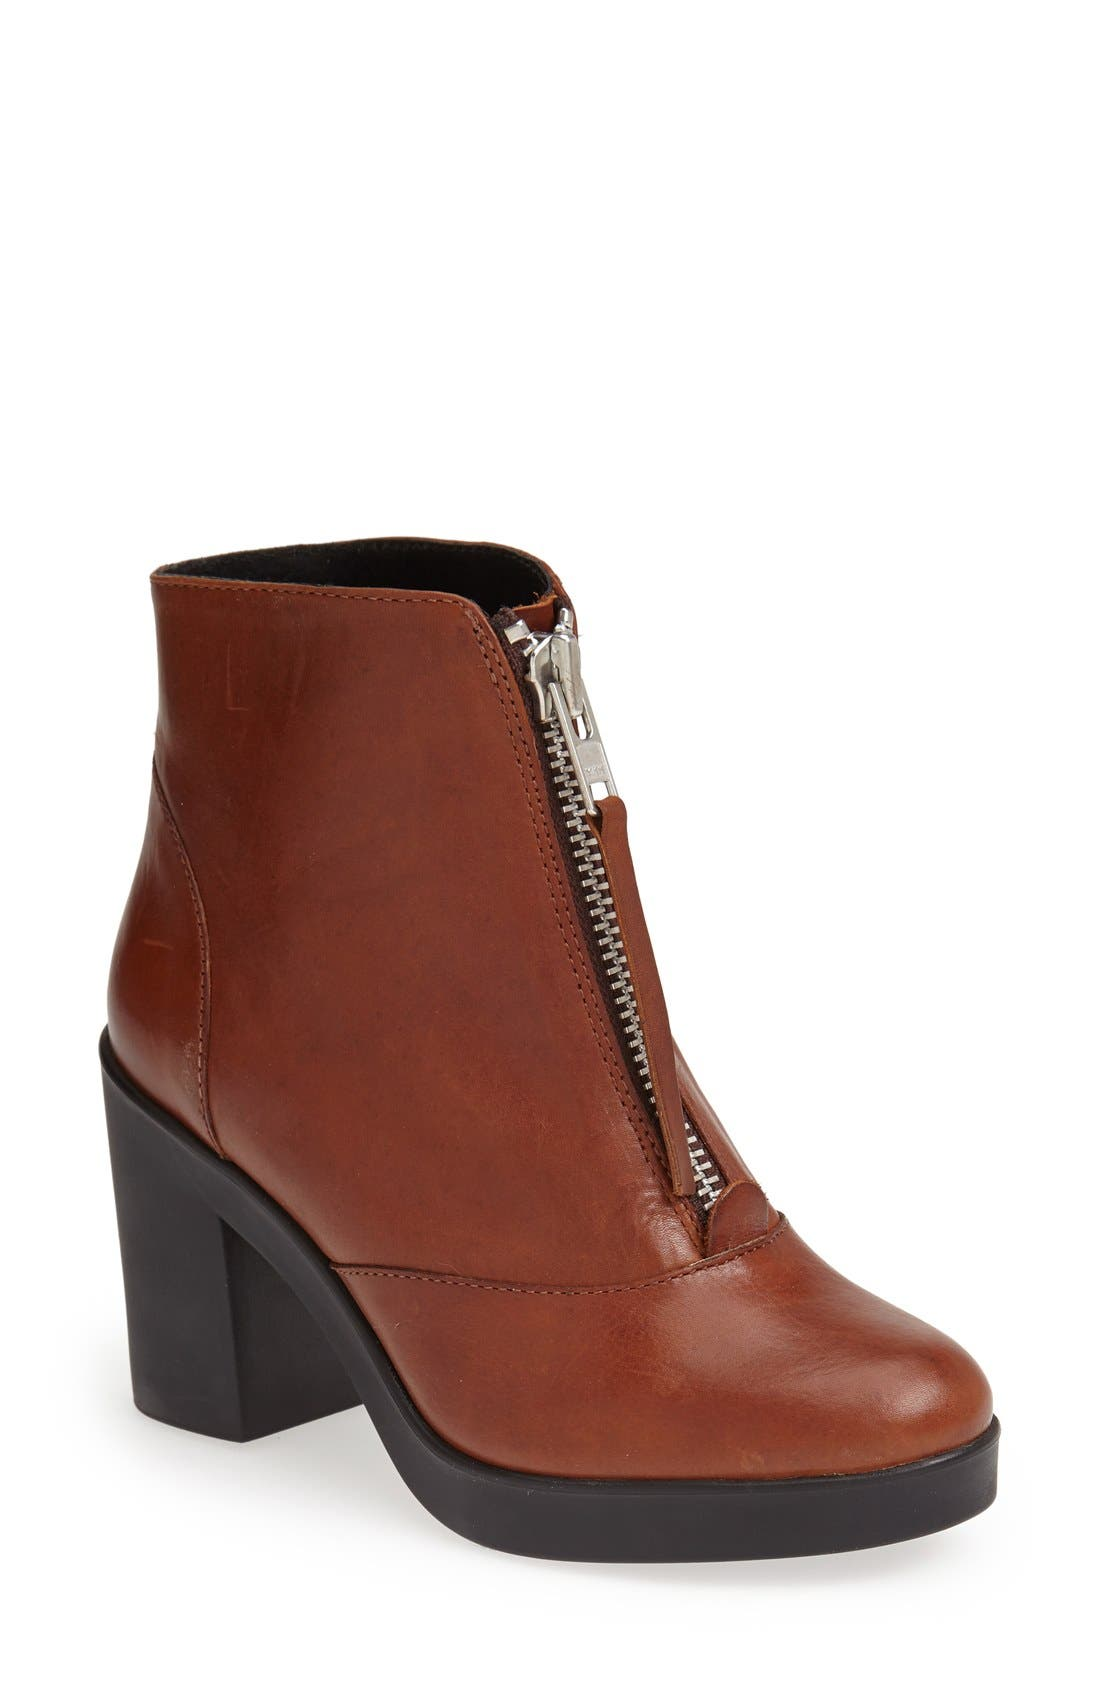 'Magic' Ankle Boot, Main, color, 210